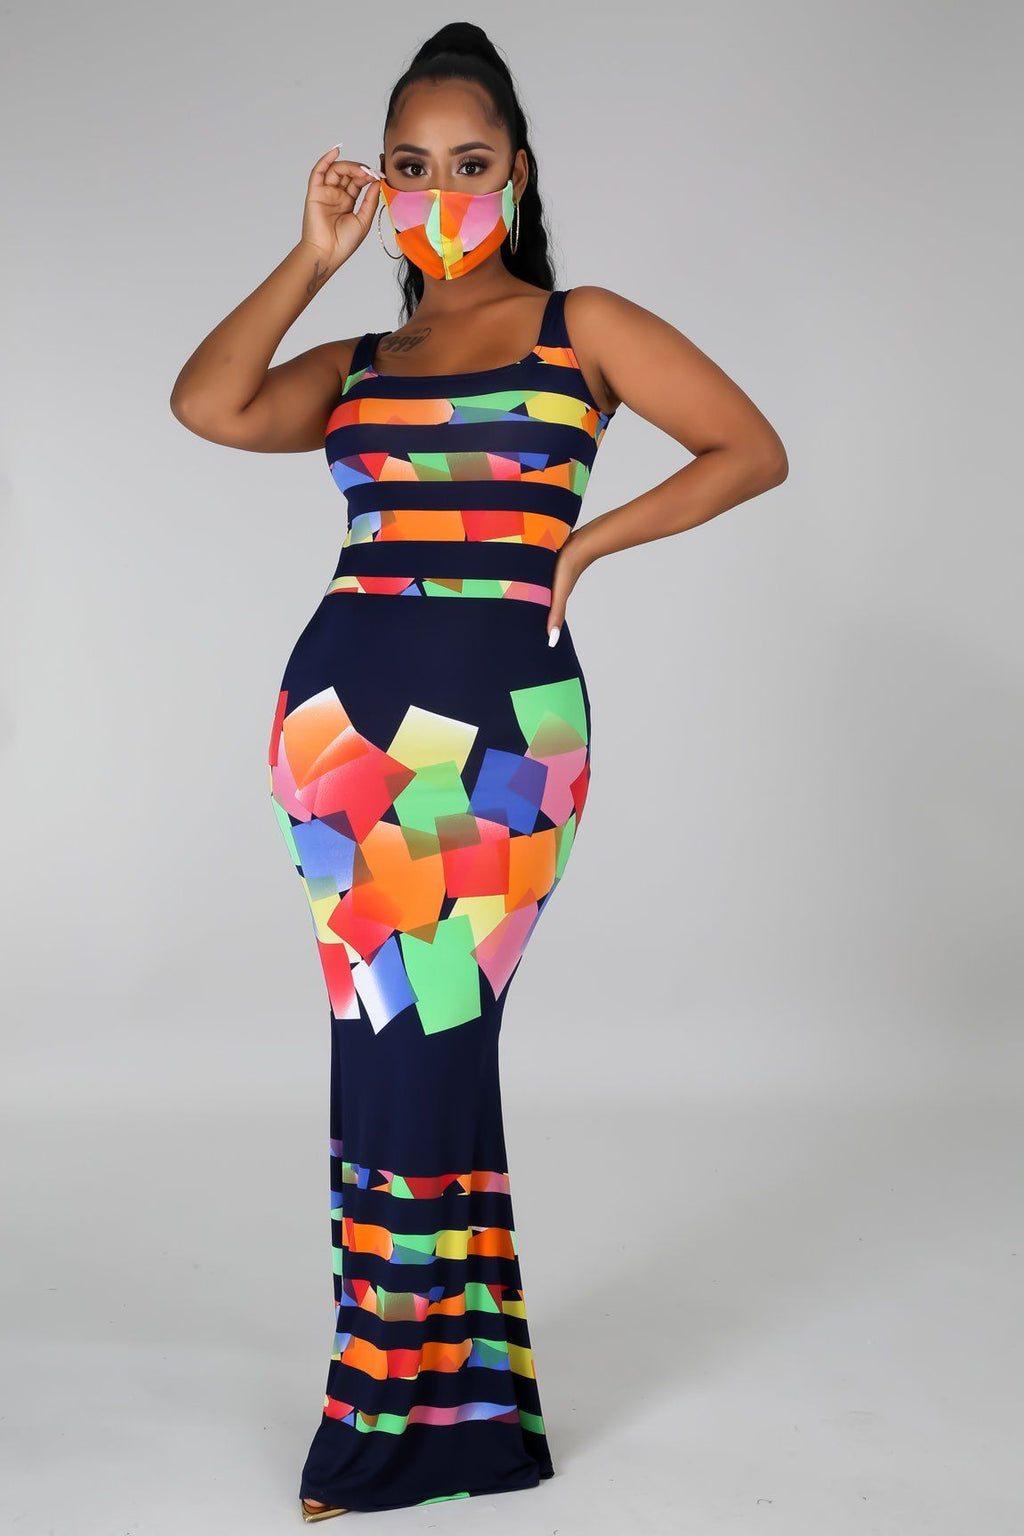 2pc Art Appreciation Dress Set